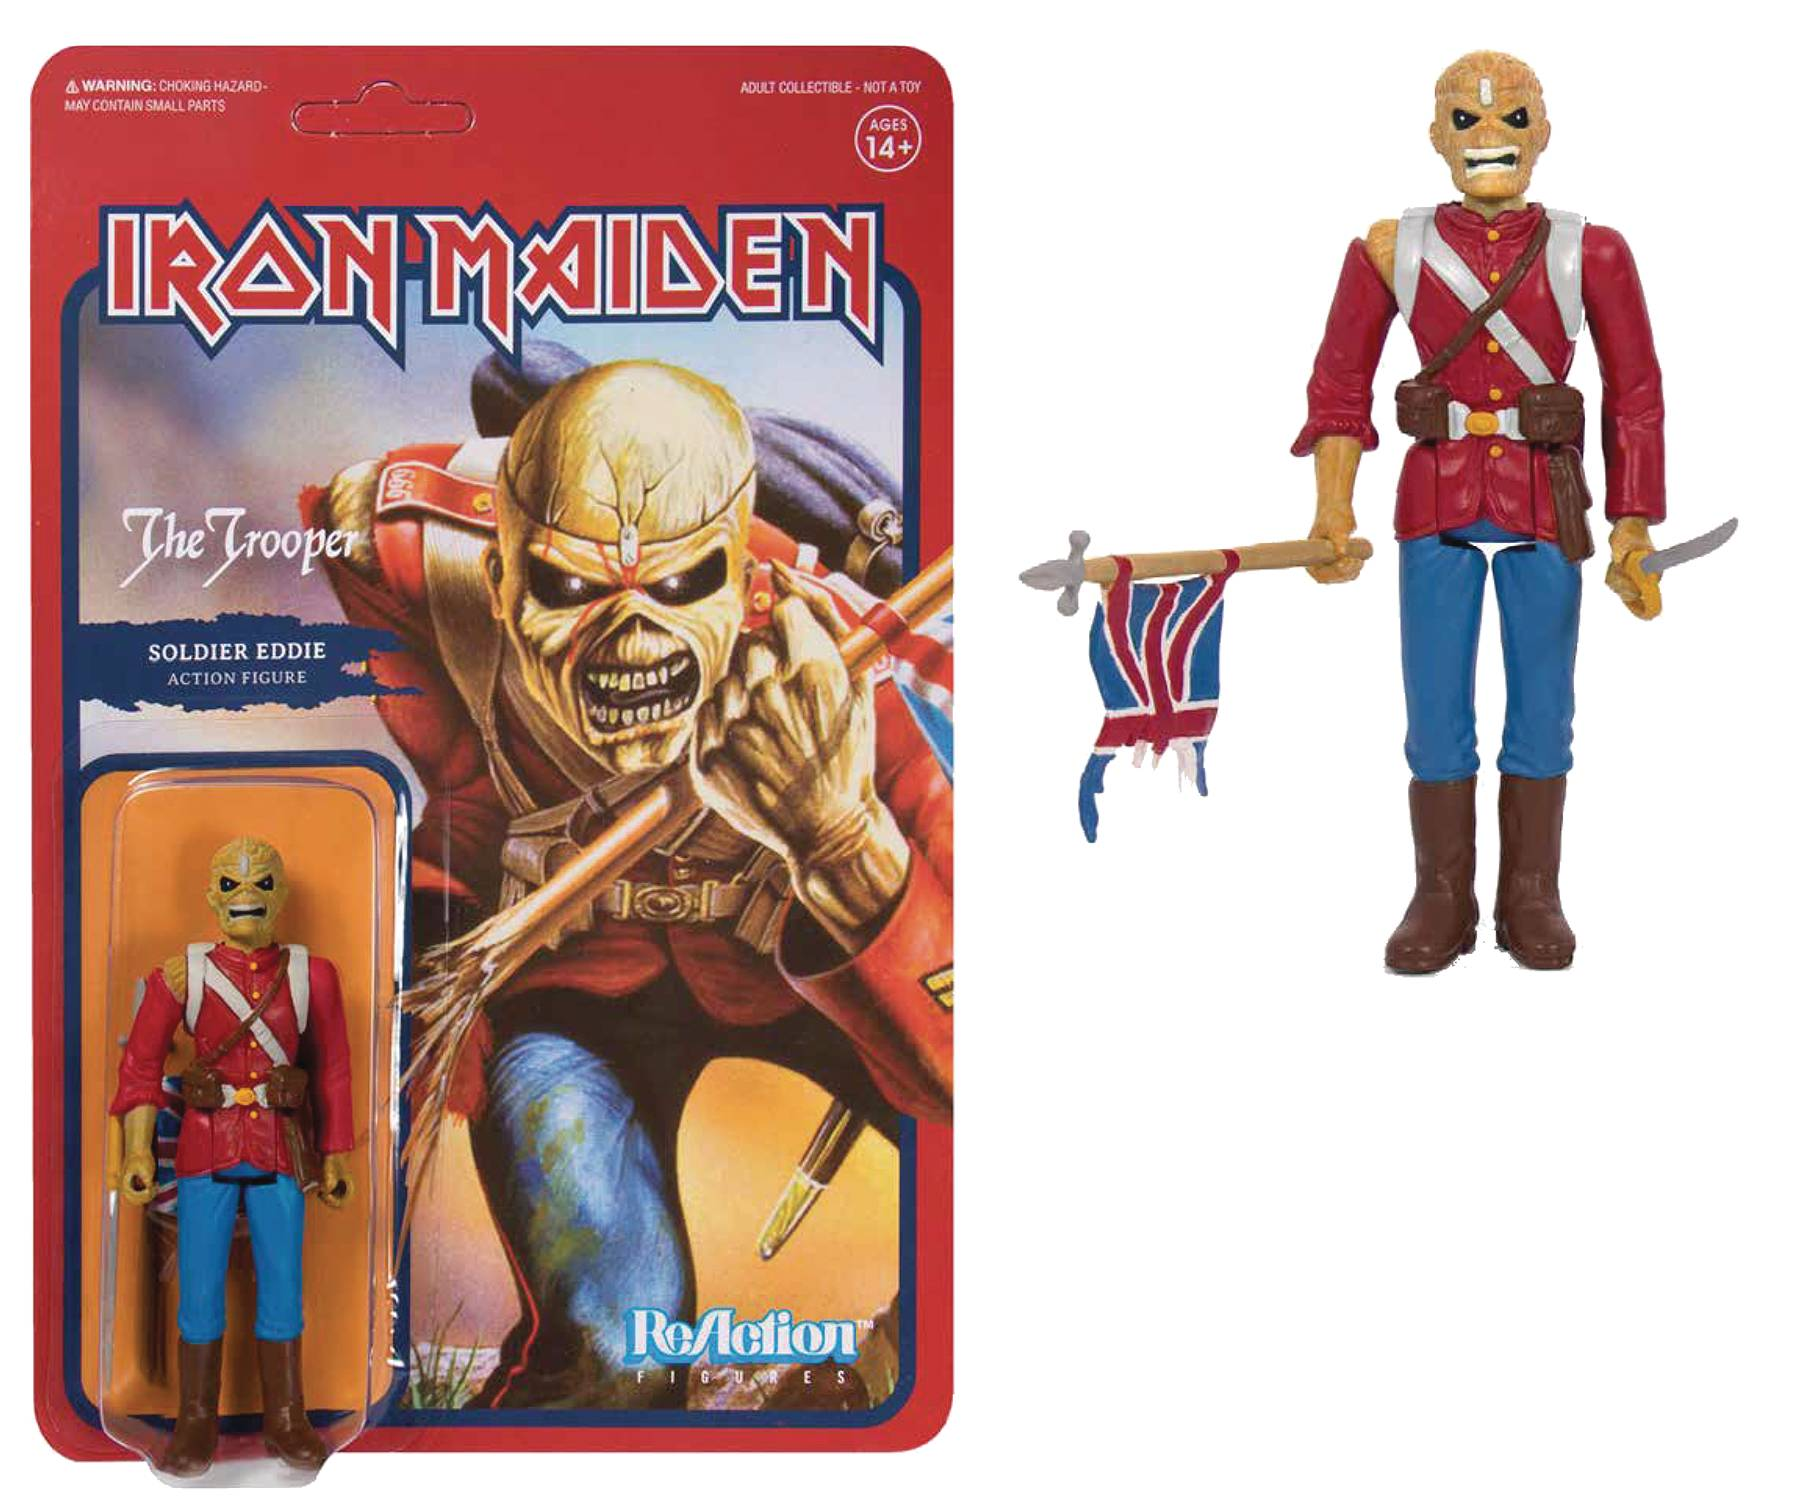 IRON MAIDEN TROOPER SOLDIER EDDIE REACTION FIGURE